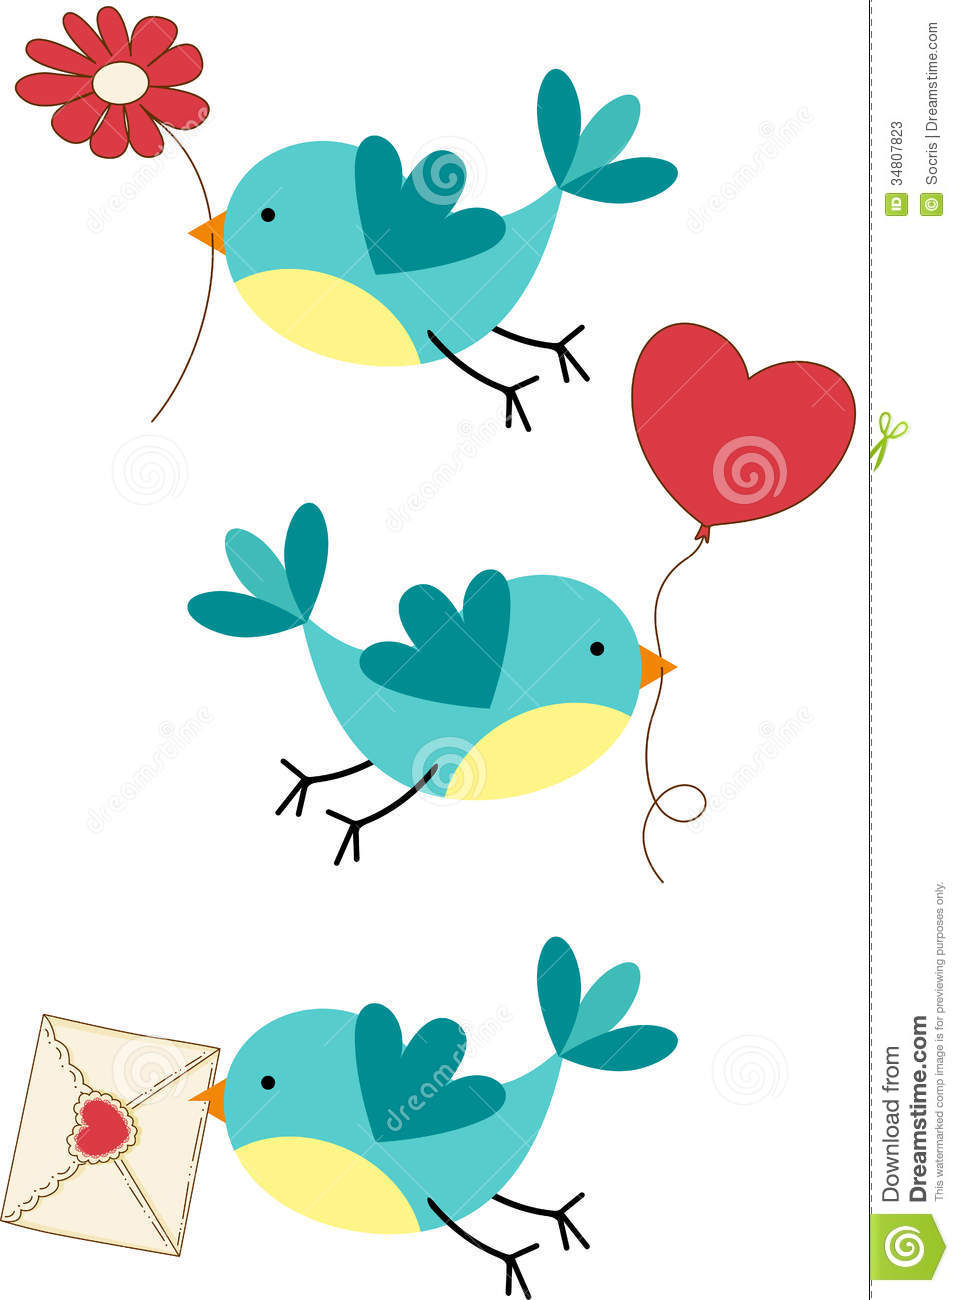 Cute cartoon love birds - photo#24